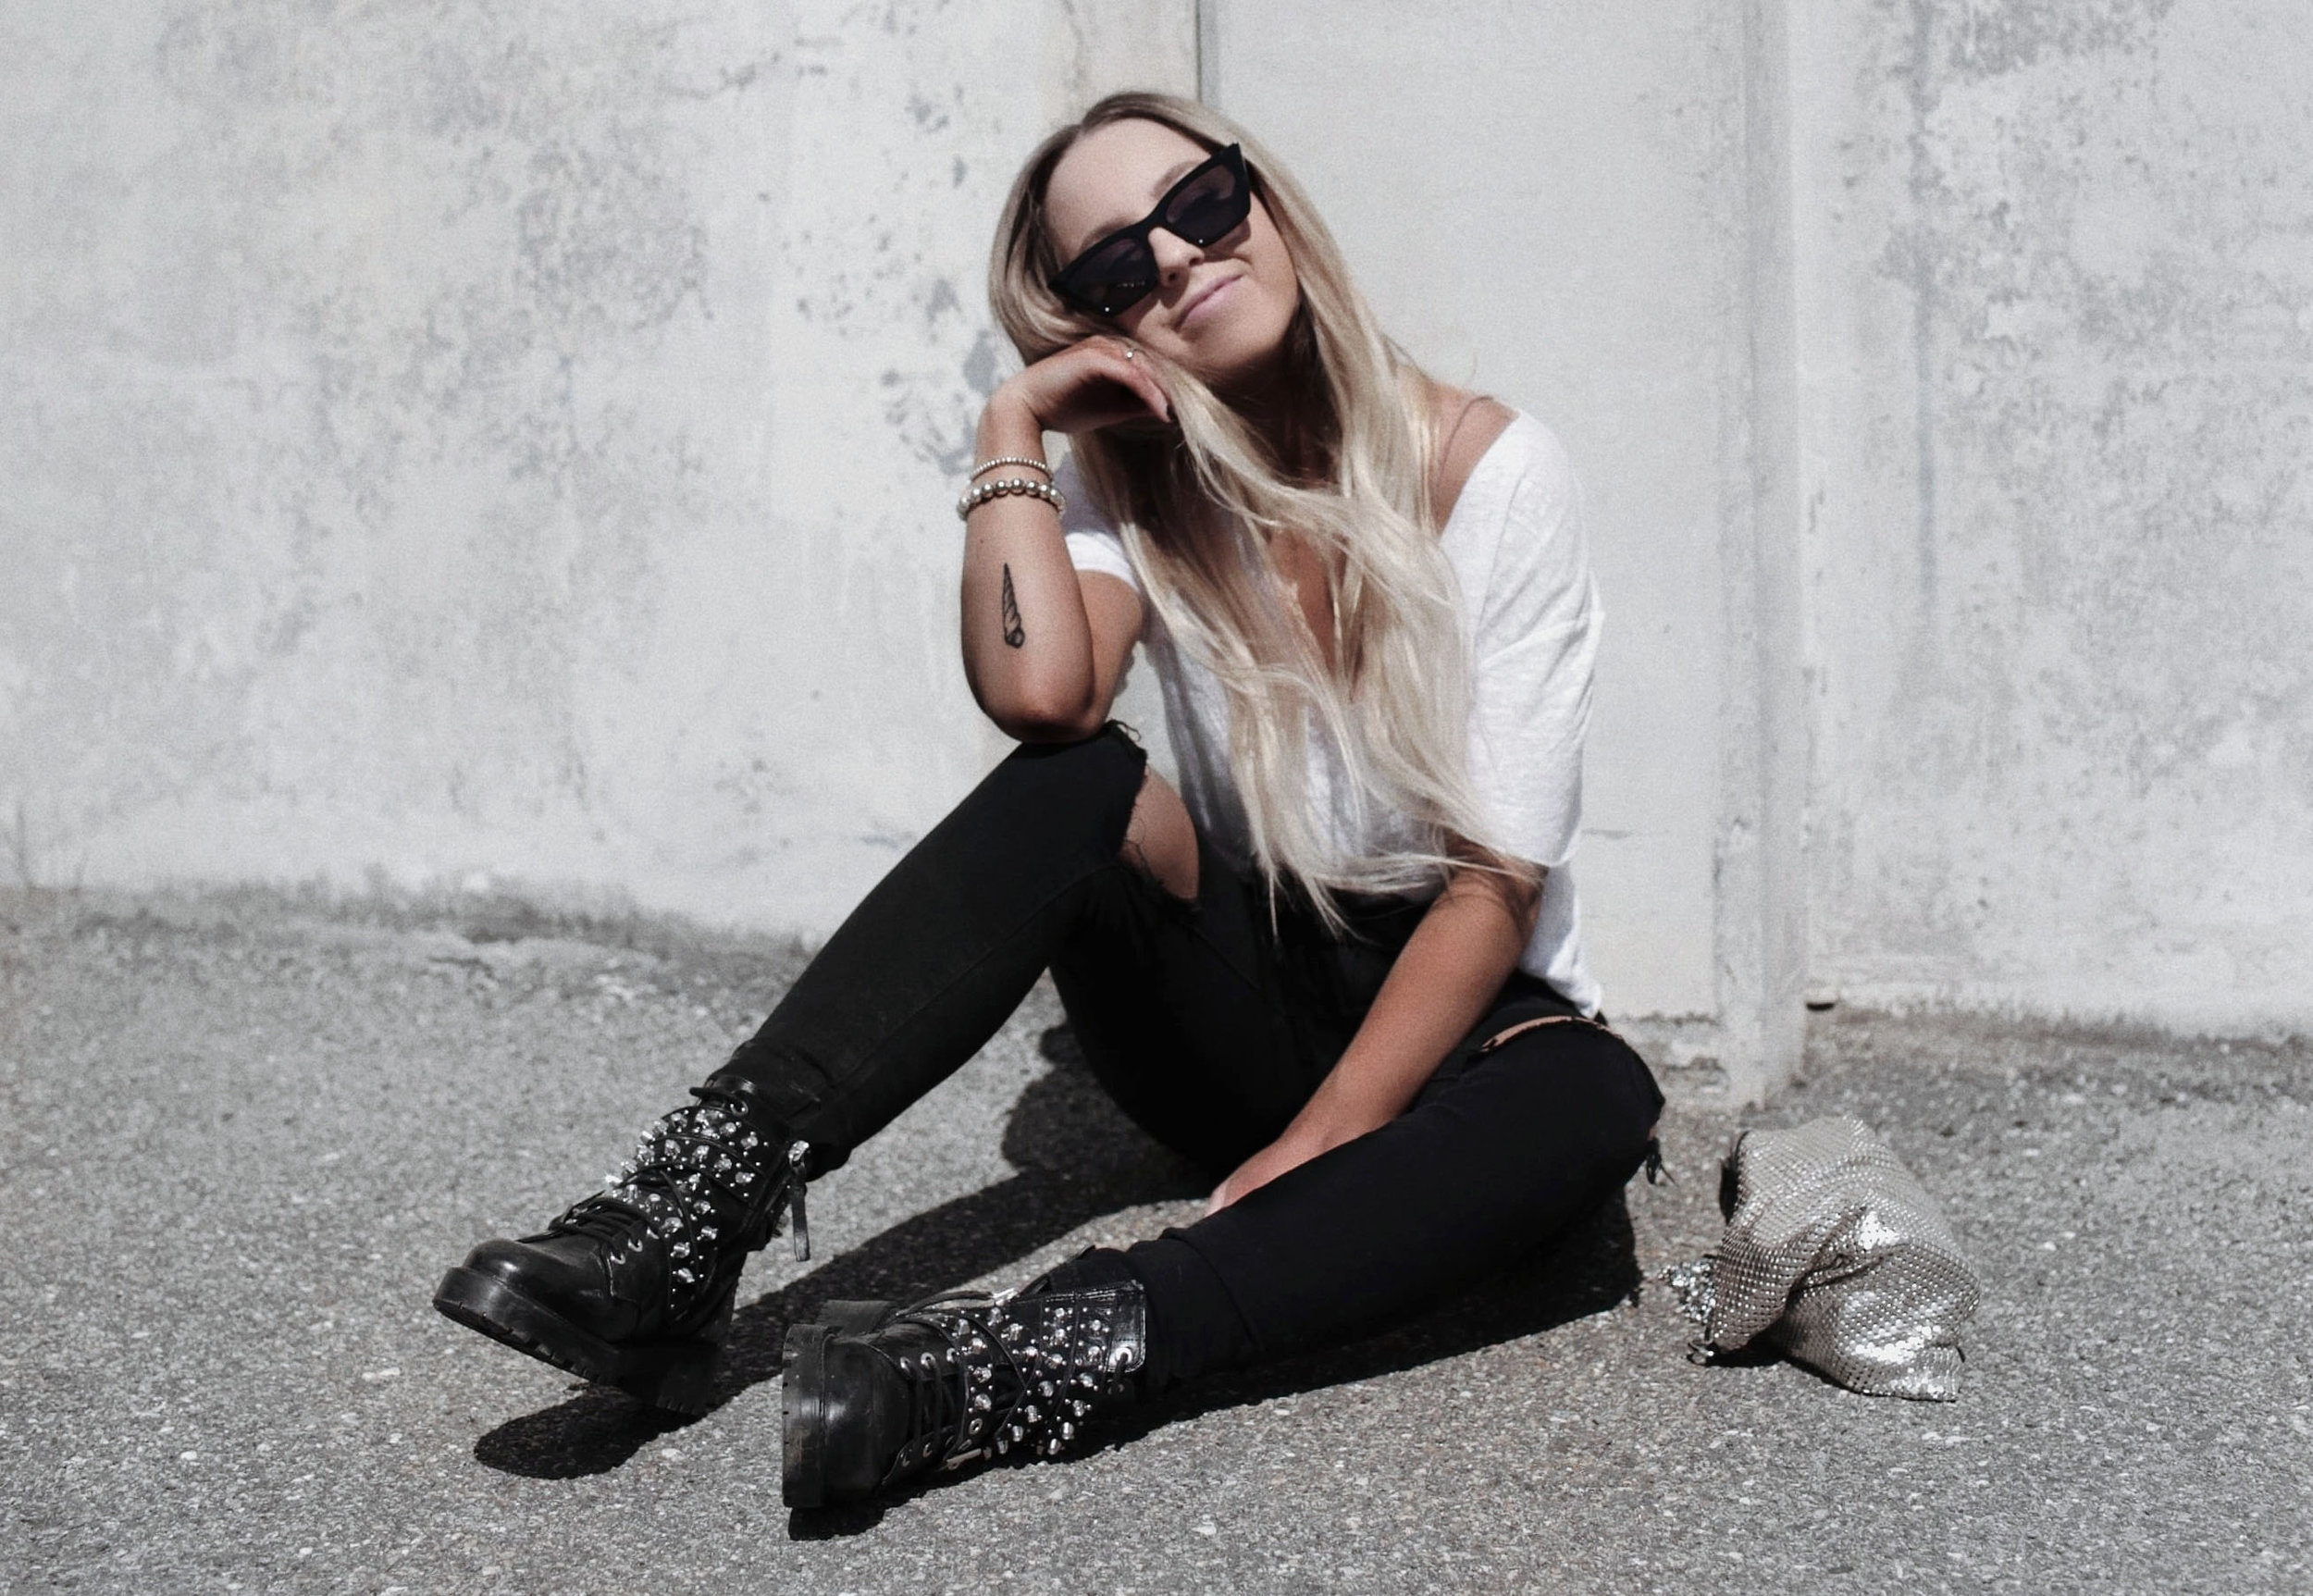 allie beckwith blog header combat boots.jpg